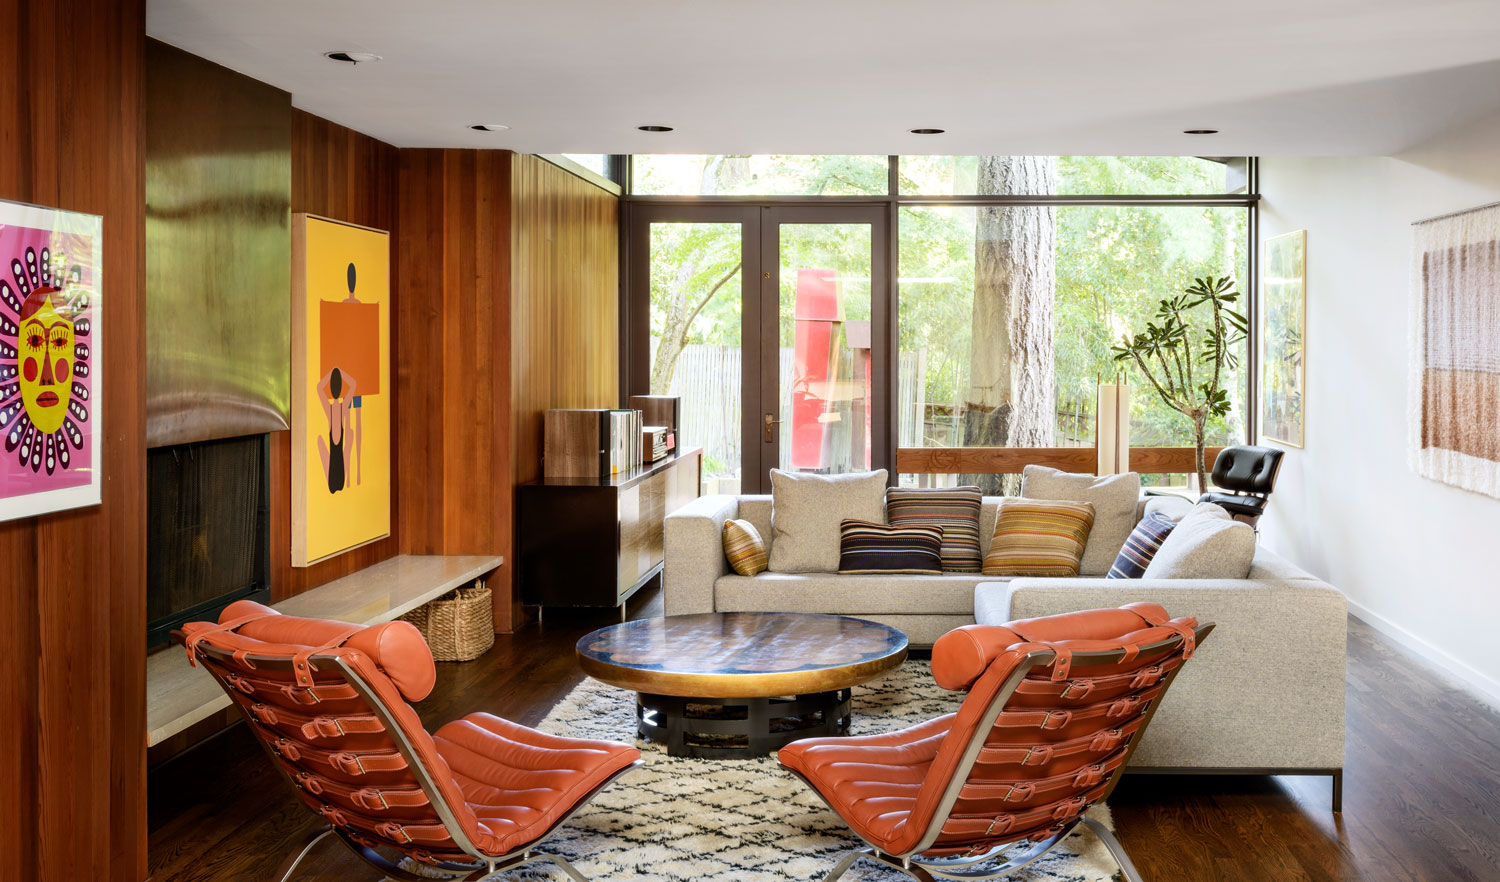 Interior Design Of The House 1950s Portland House Remodel By Jessica Helgerson